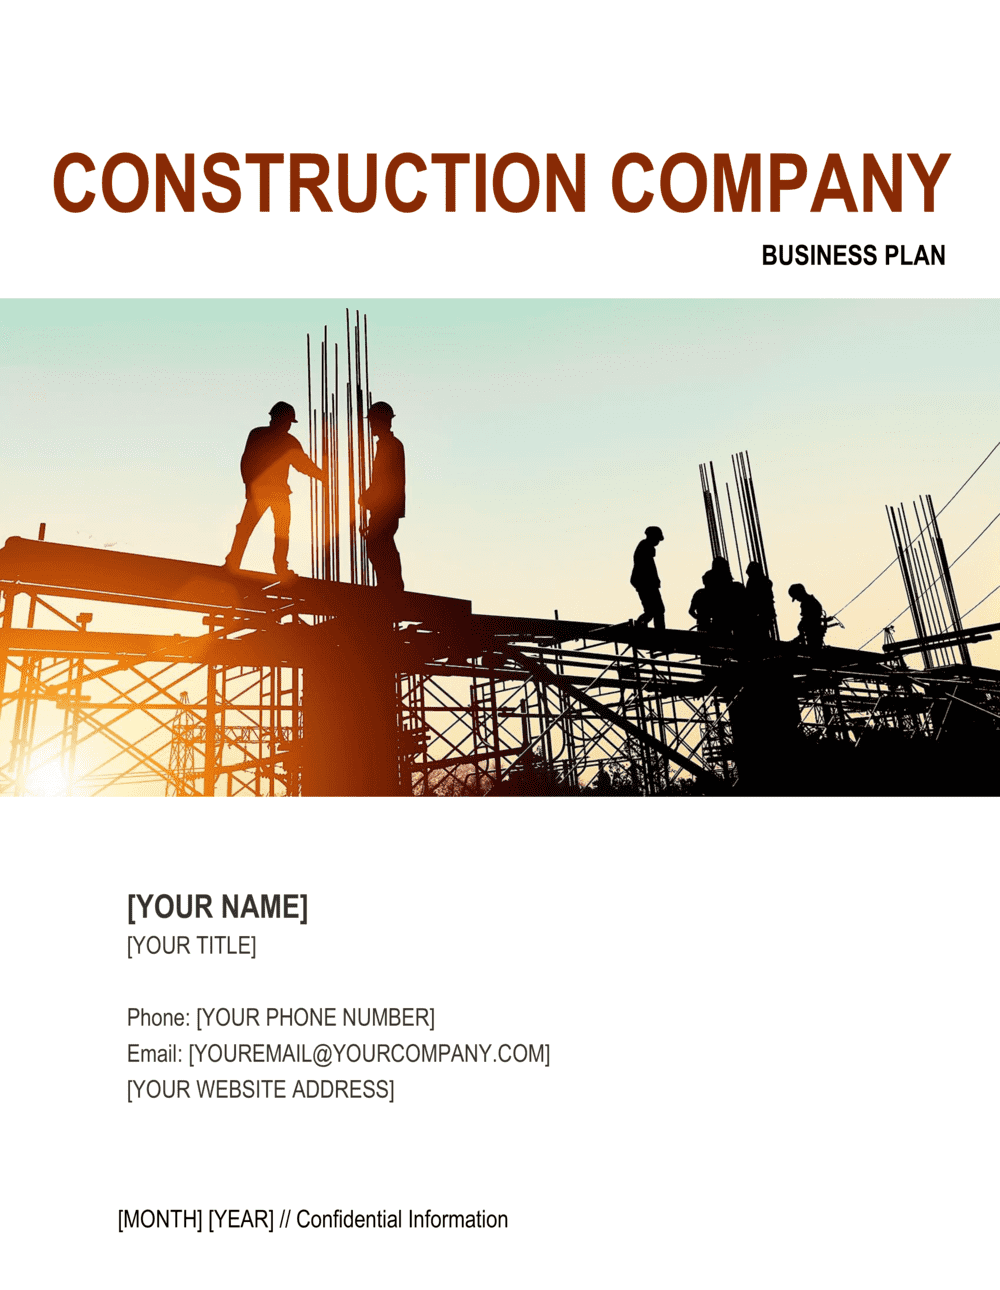 Business-in-a-Box's Construction Company Business Plan 2 Template